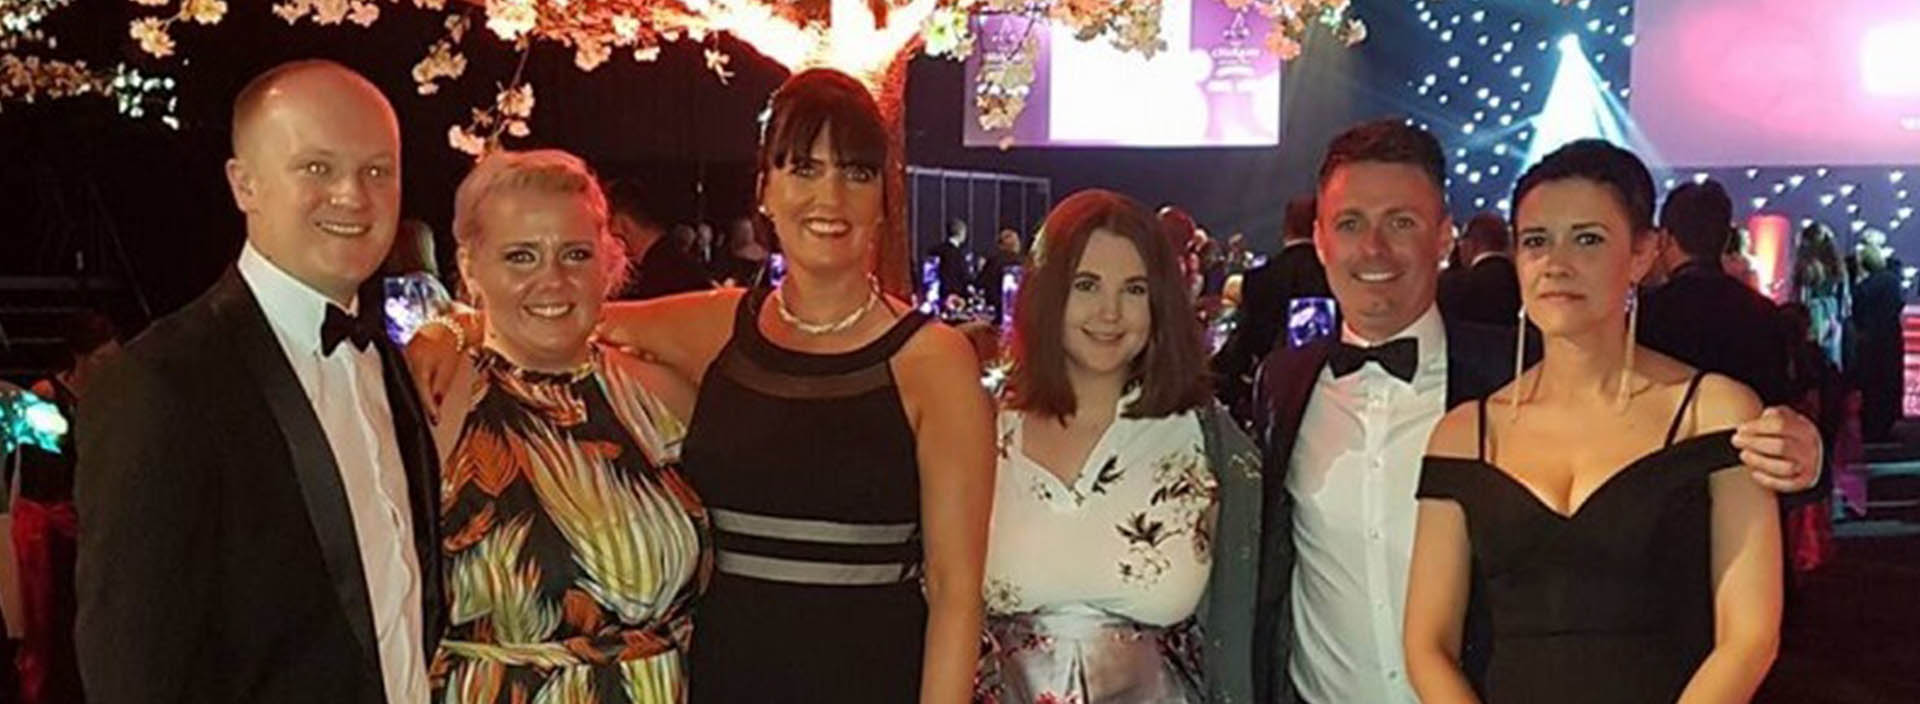 Balhousie Care Group scoops HR accolade, latest in line of awards